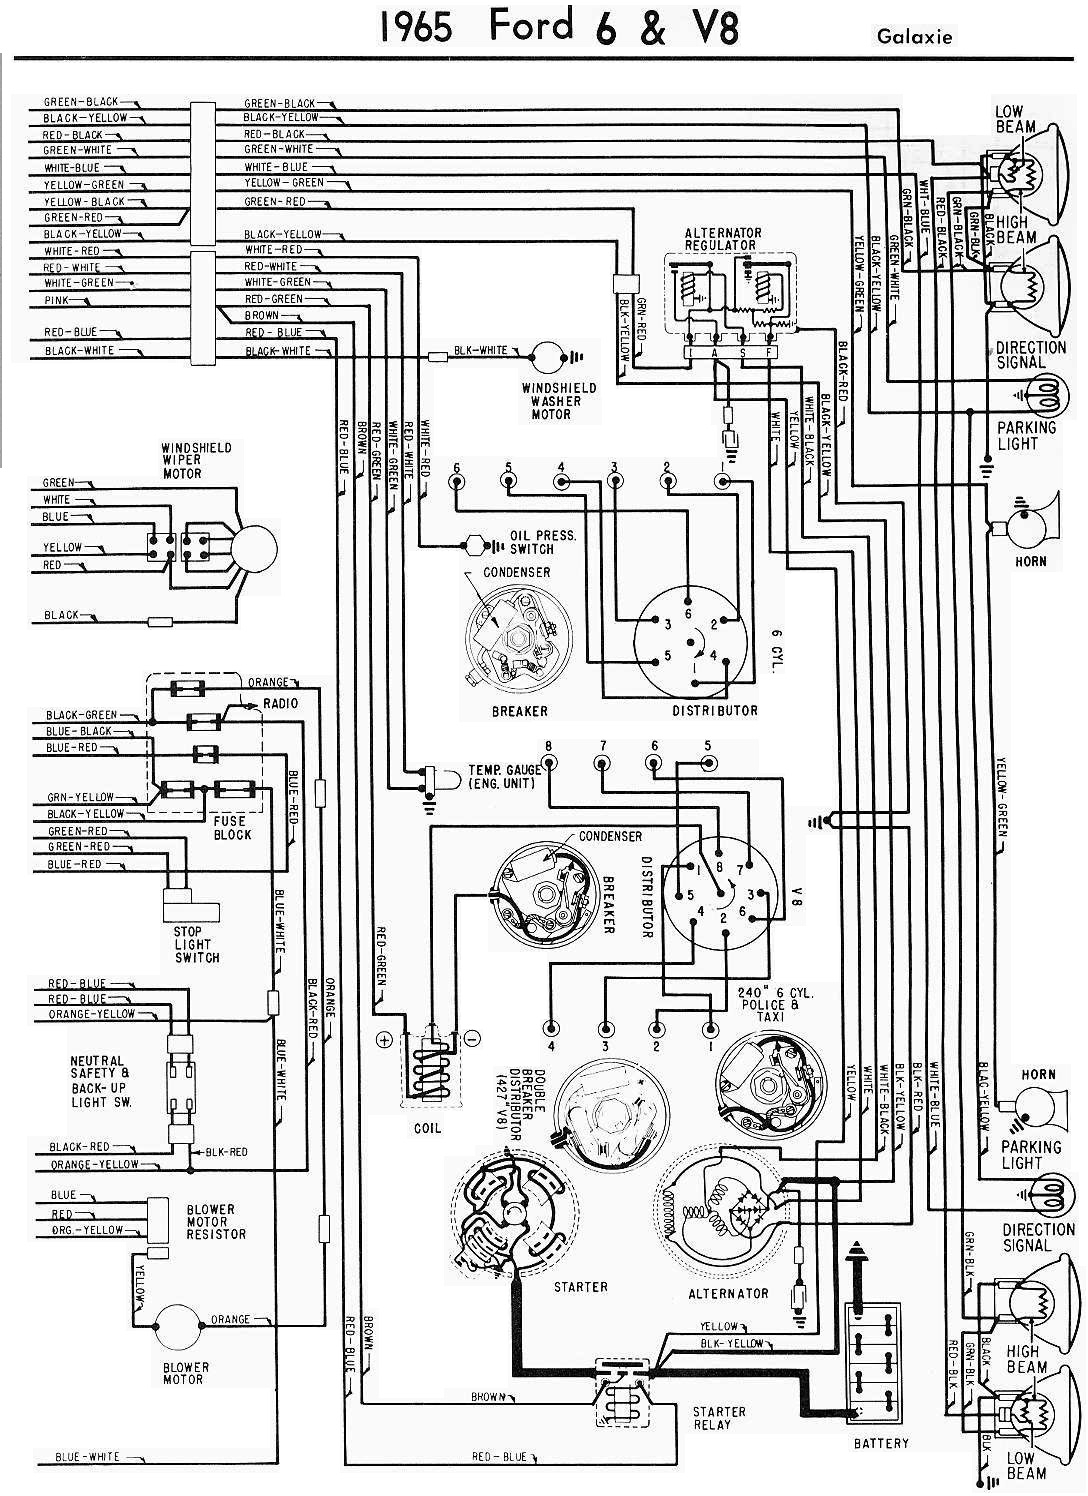 medium resolution of 1965 ford galaxie complete electrical wiring diagram part ford tractor ignition switch wiring 1956 ford wiring